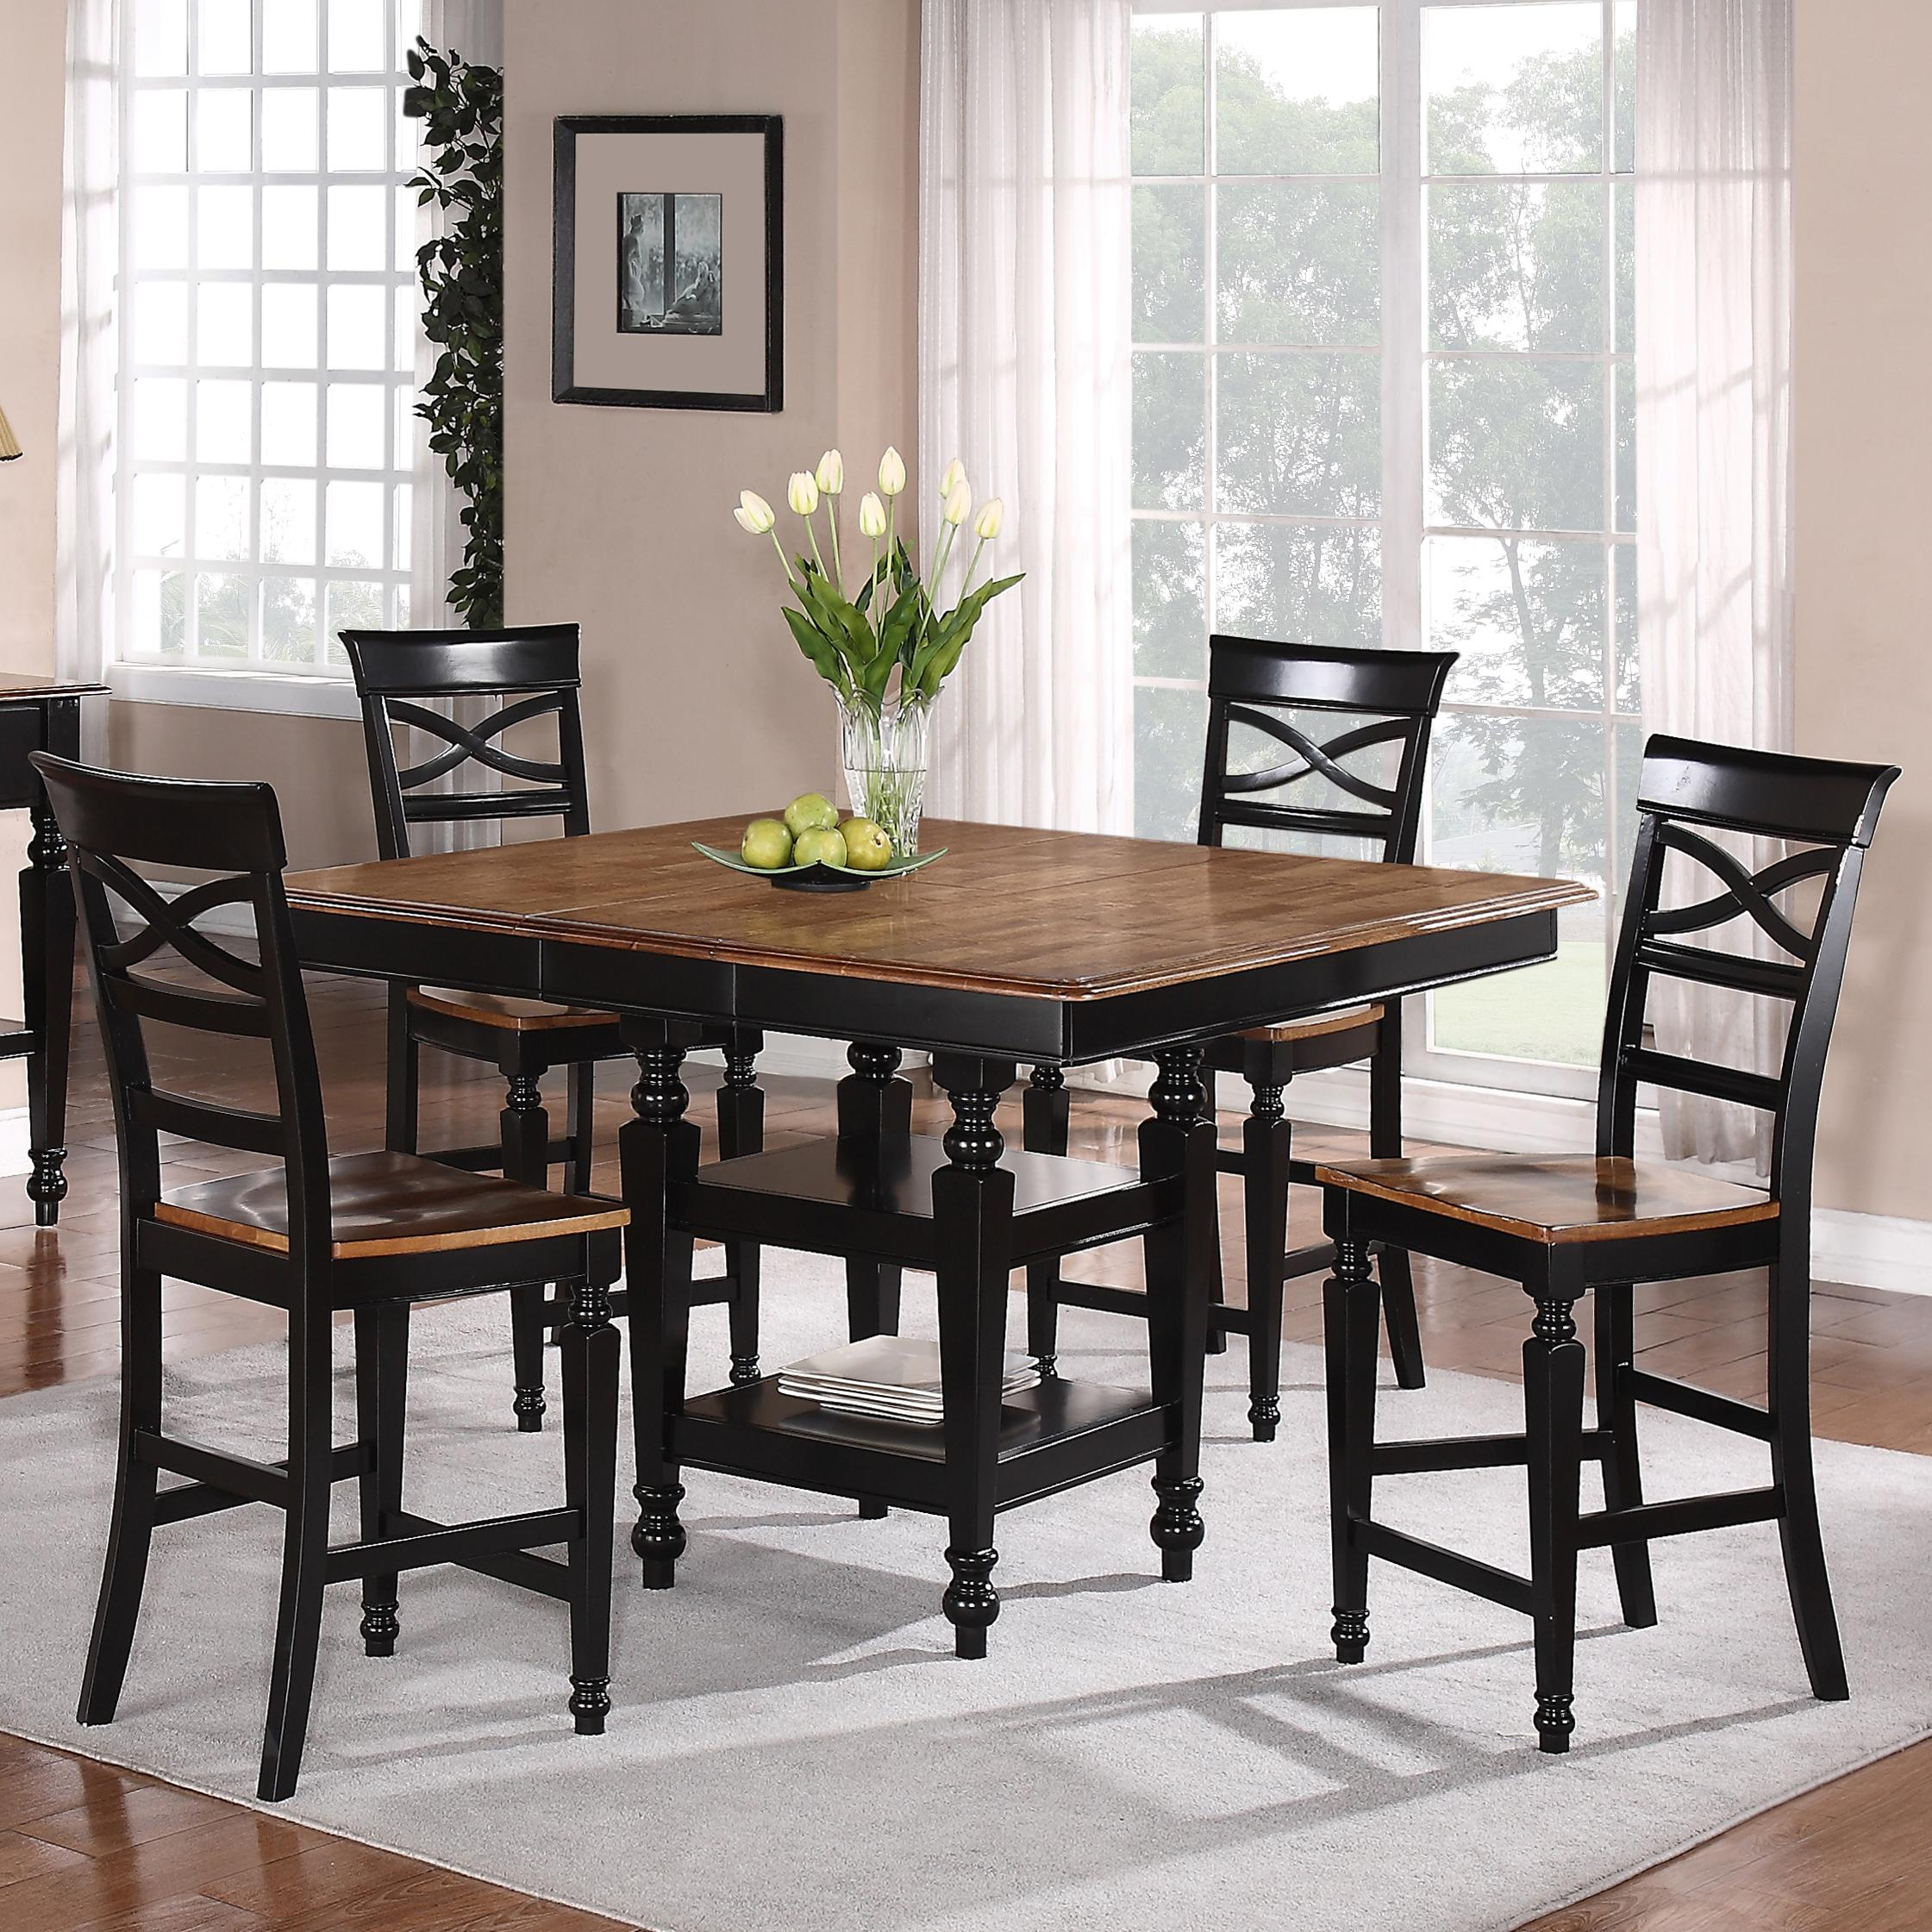 Holland House 1272 Dining 5 Piece Counter Height Square Top Table And Open  Backrest Chair Dining Set